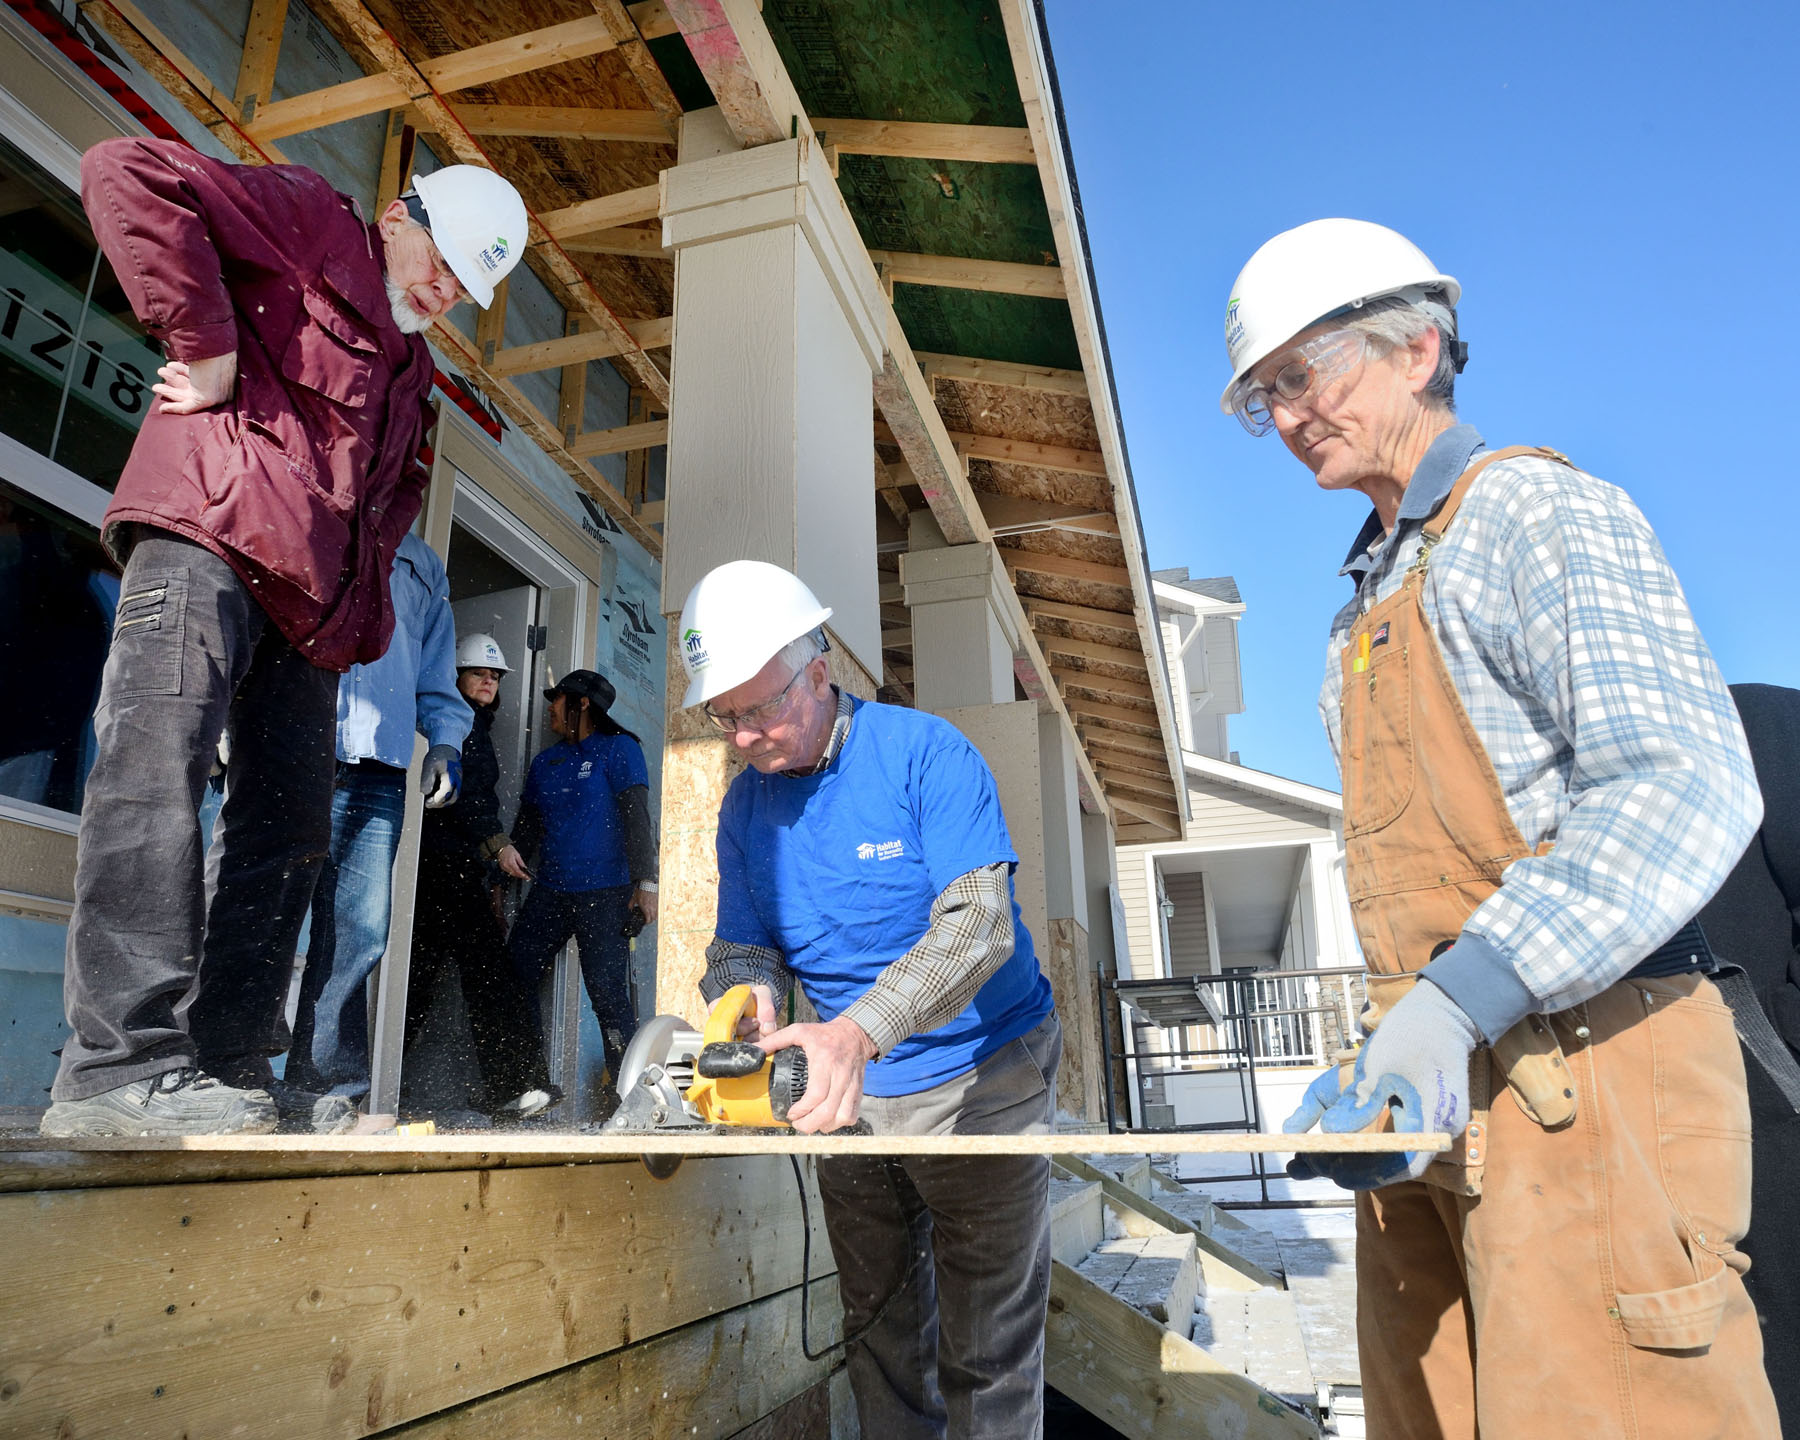 During the visit to Calgary the Governor General teamed up with Habitat for Humanity Southern Alberta to help construct a duplex in Evanston.